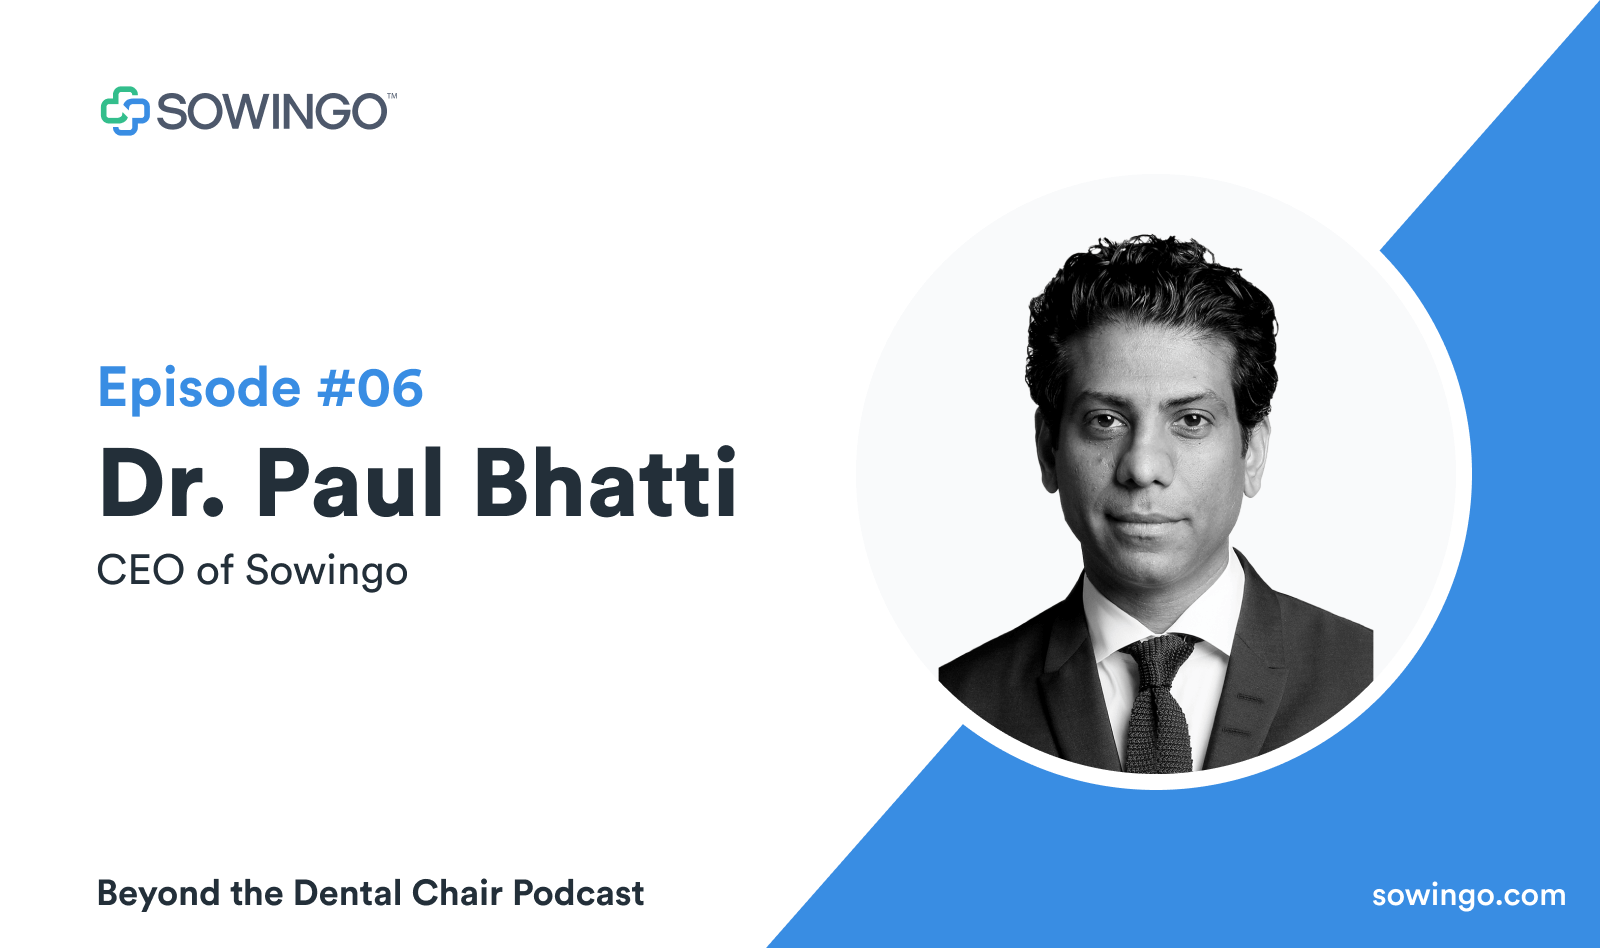 Beyond the dental podcast with Dr. Paul Bhatti